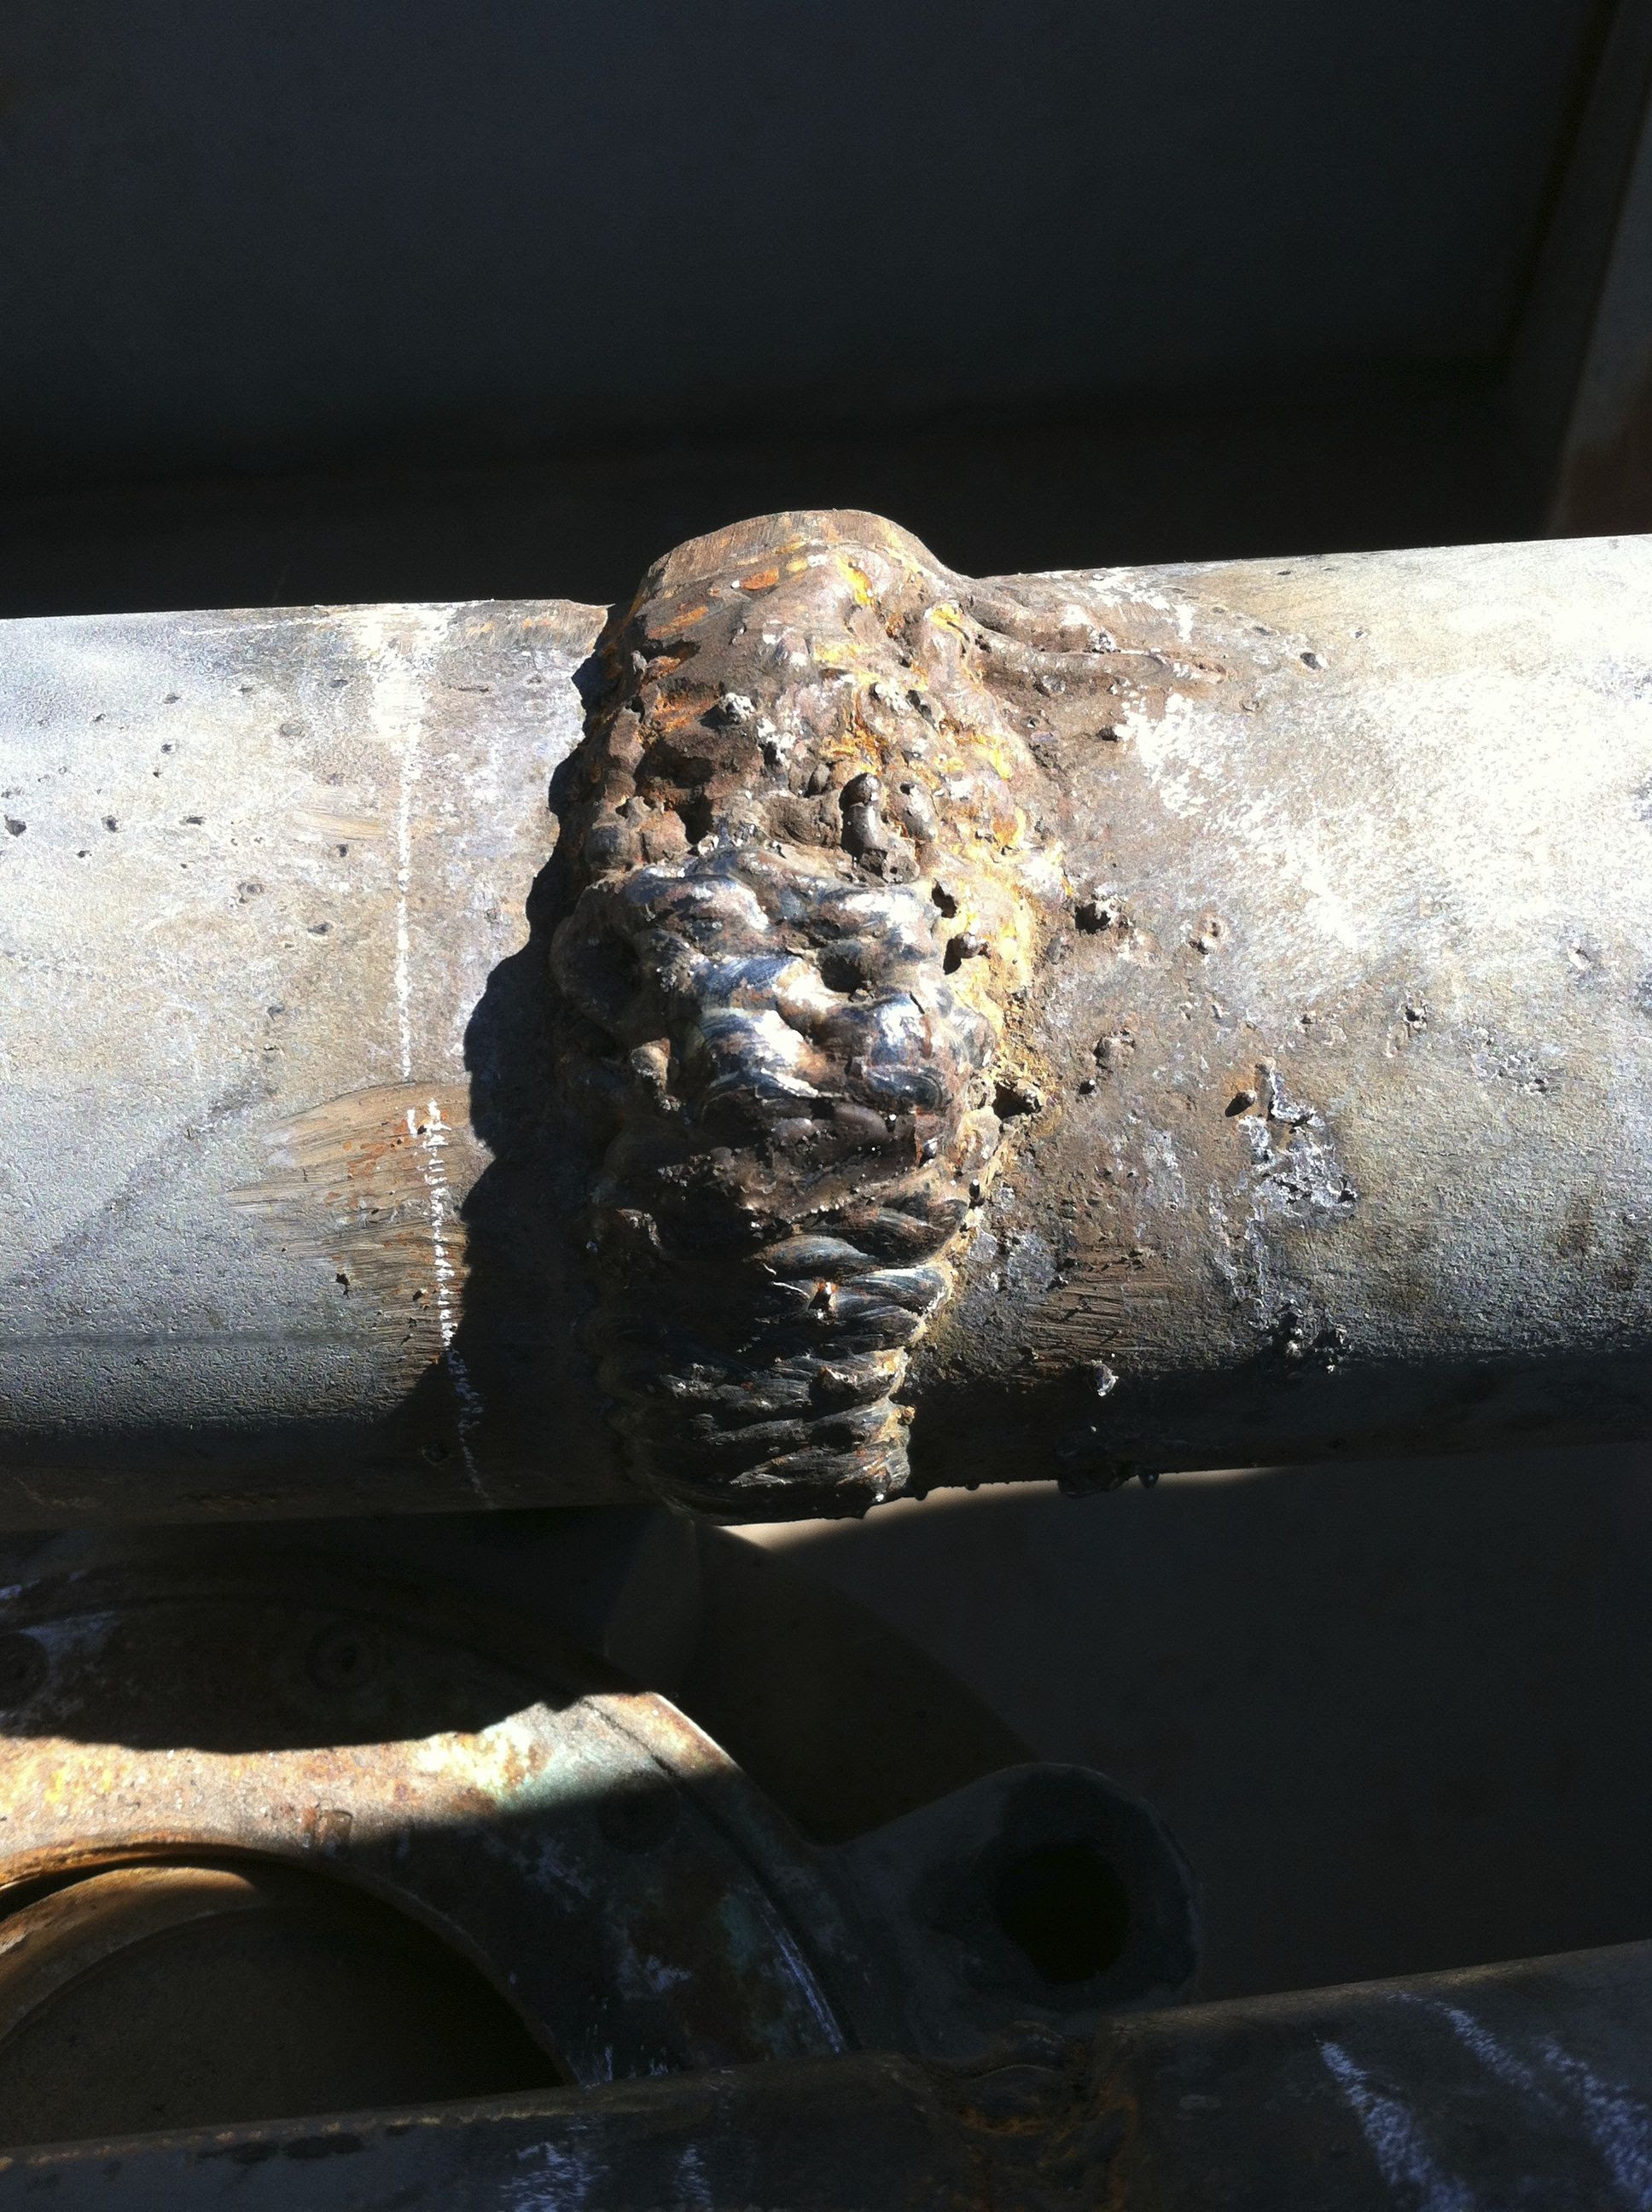 The worst 'pipe weld' I've ran across (had to be cut out ...